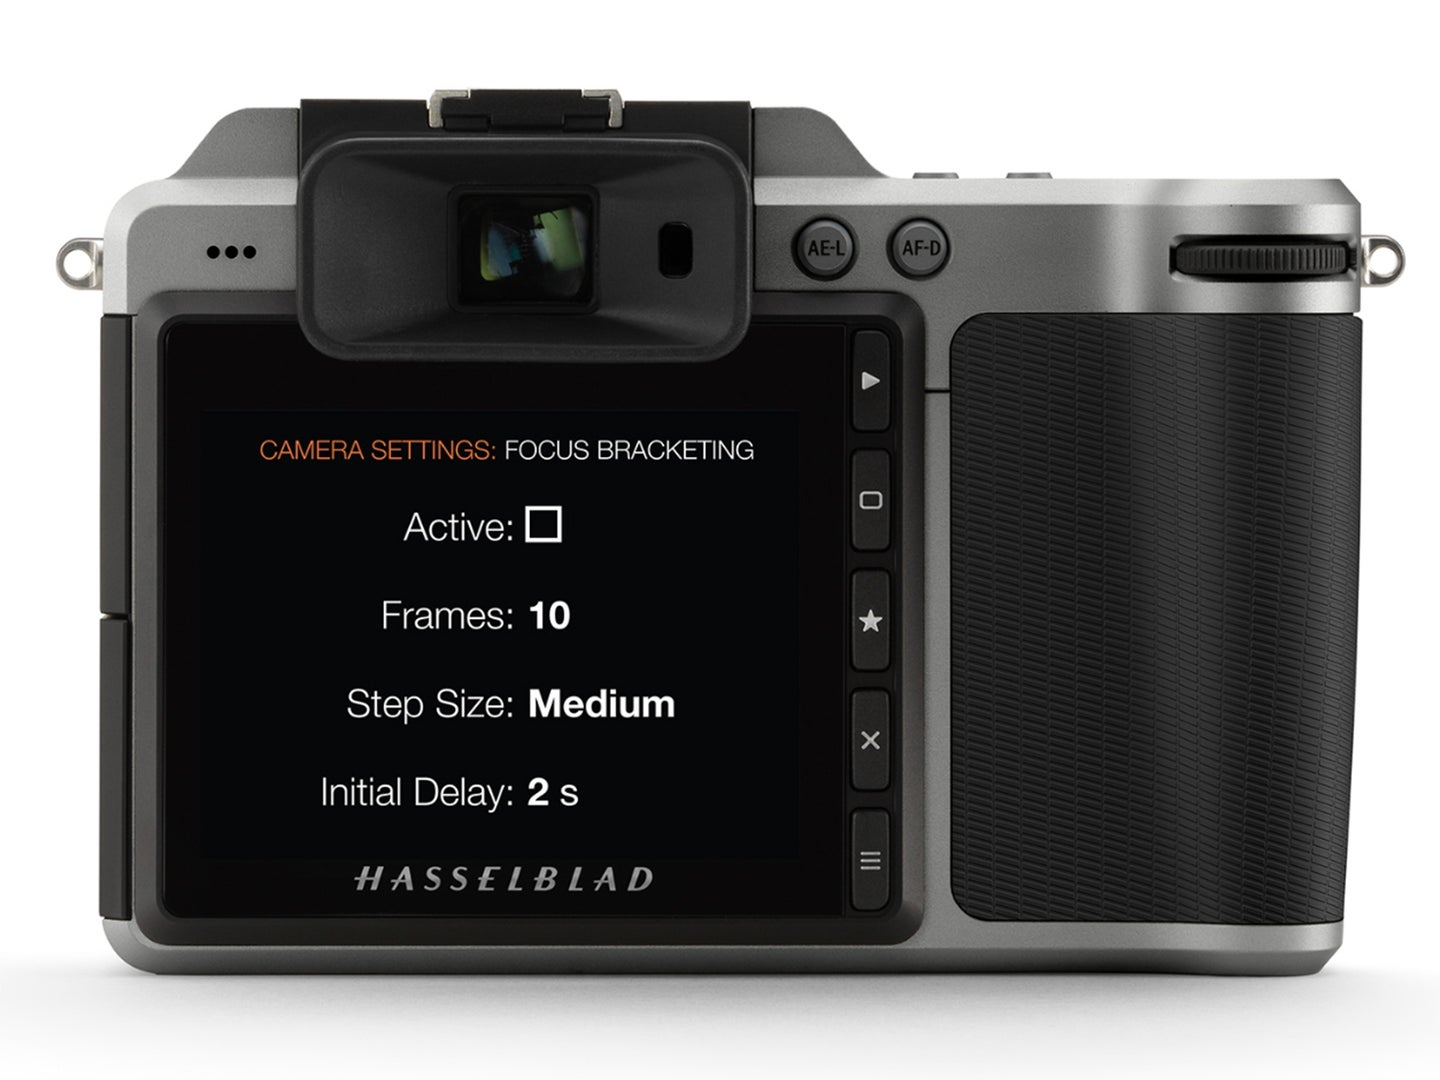 New Hasselblad firmware with focus bracketing